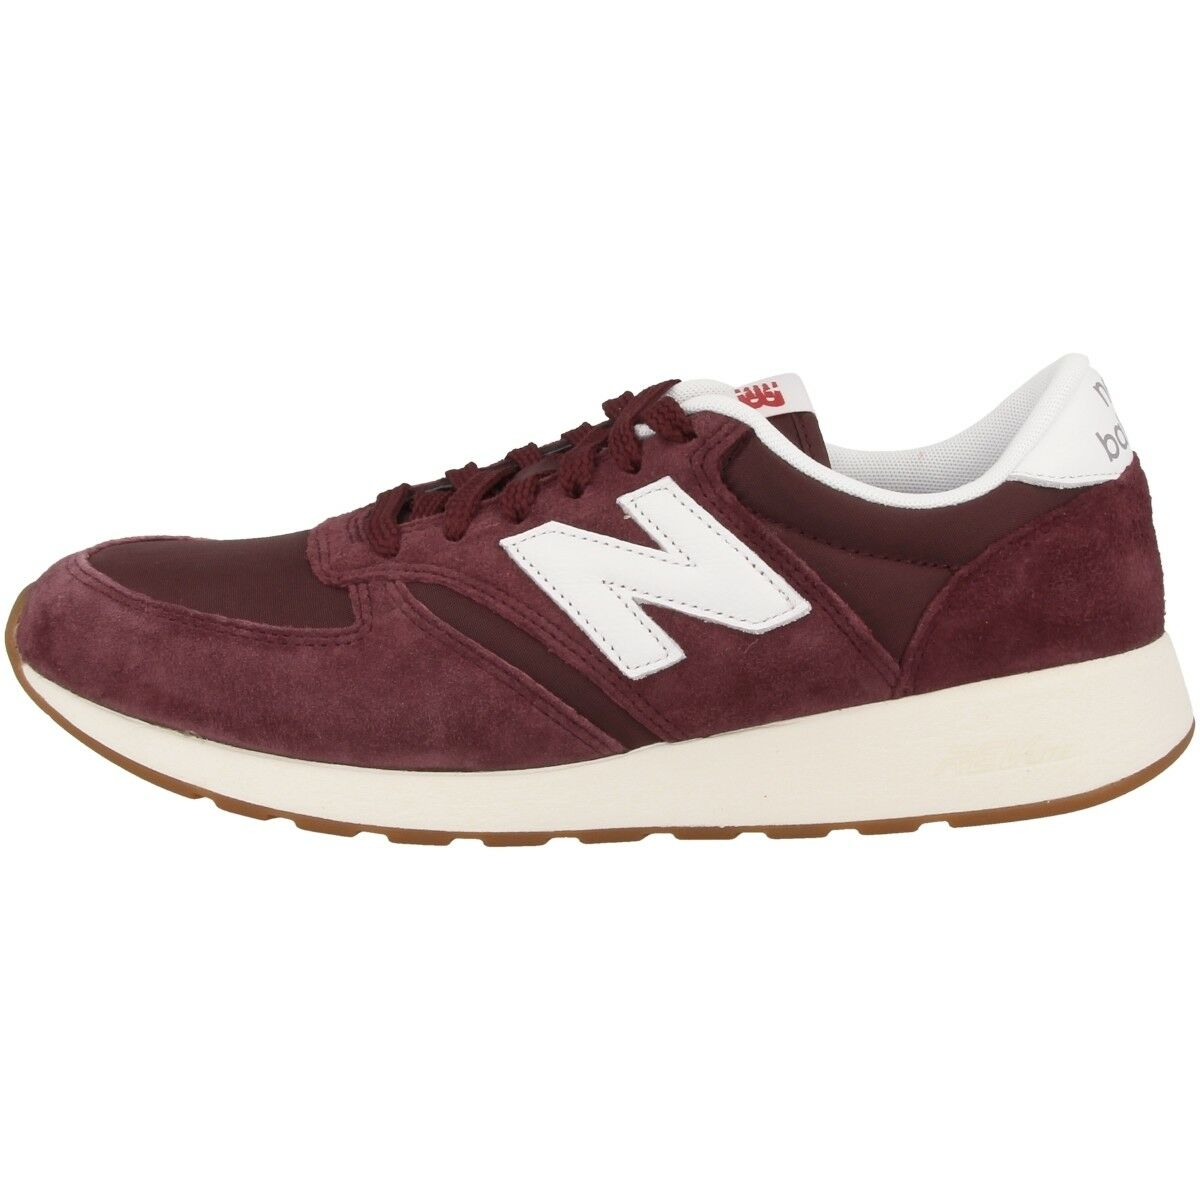 New Balance Mrl 420 Ss shoes MRL420SS Sneakers Borgogna Bianco ML574 373 410